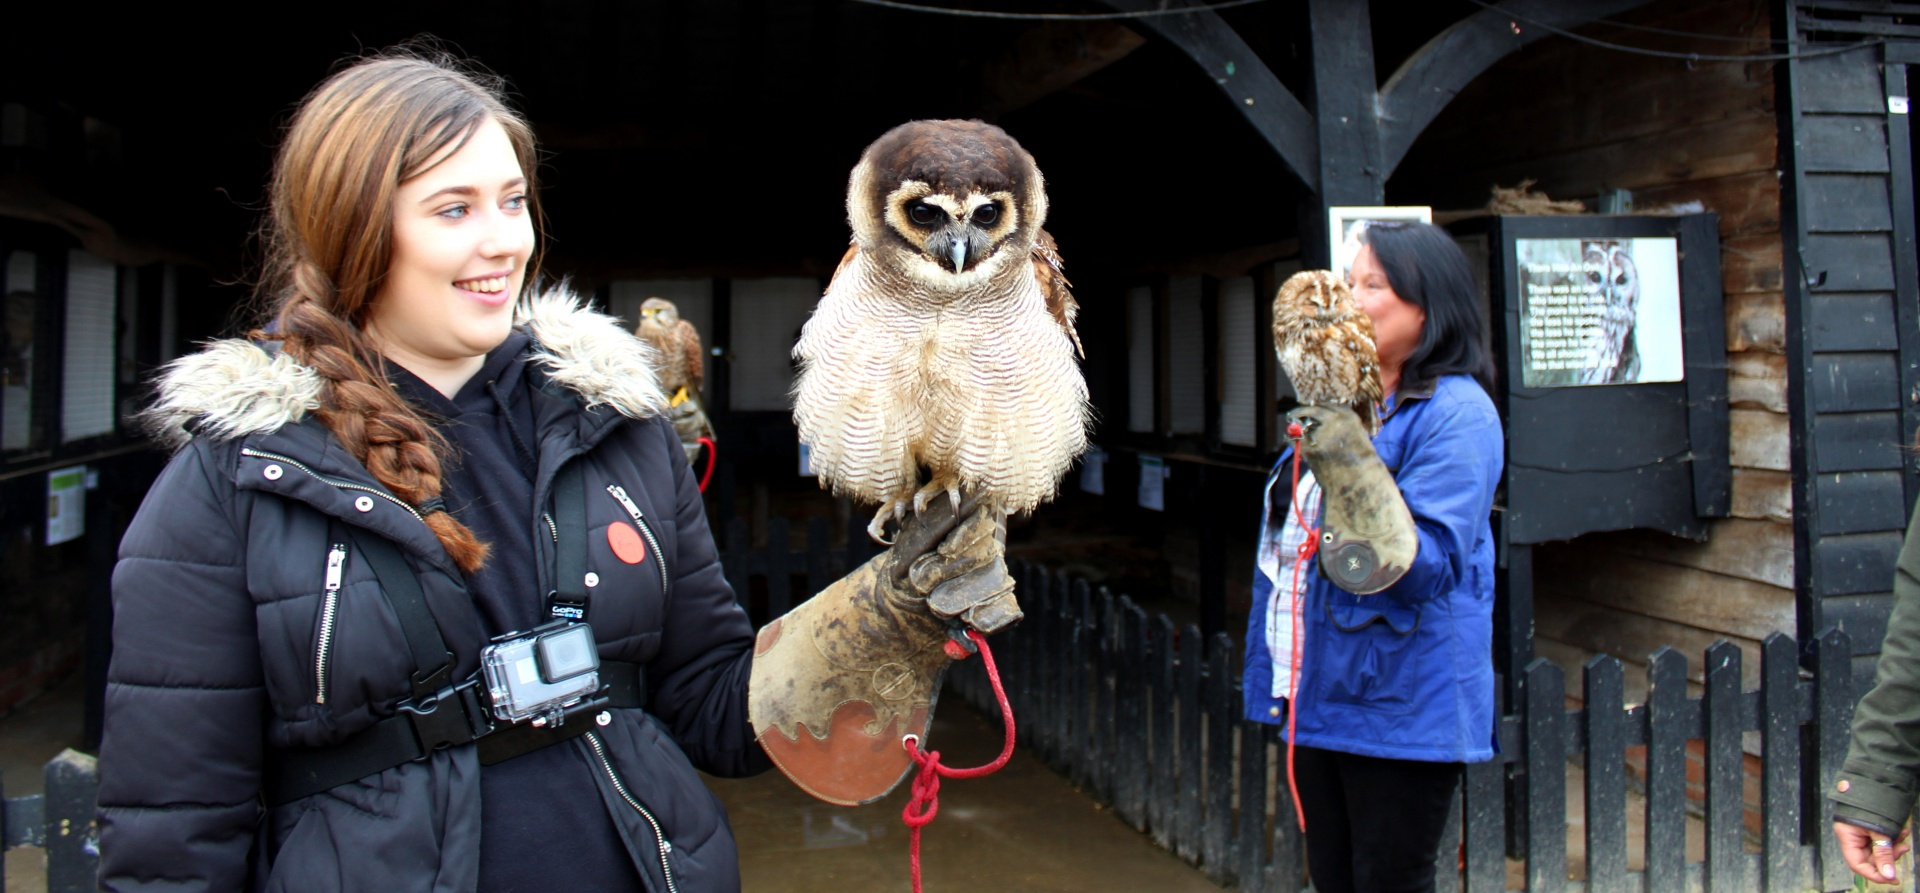 British Birds of Prey Experience in Bedfordshire-7